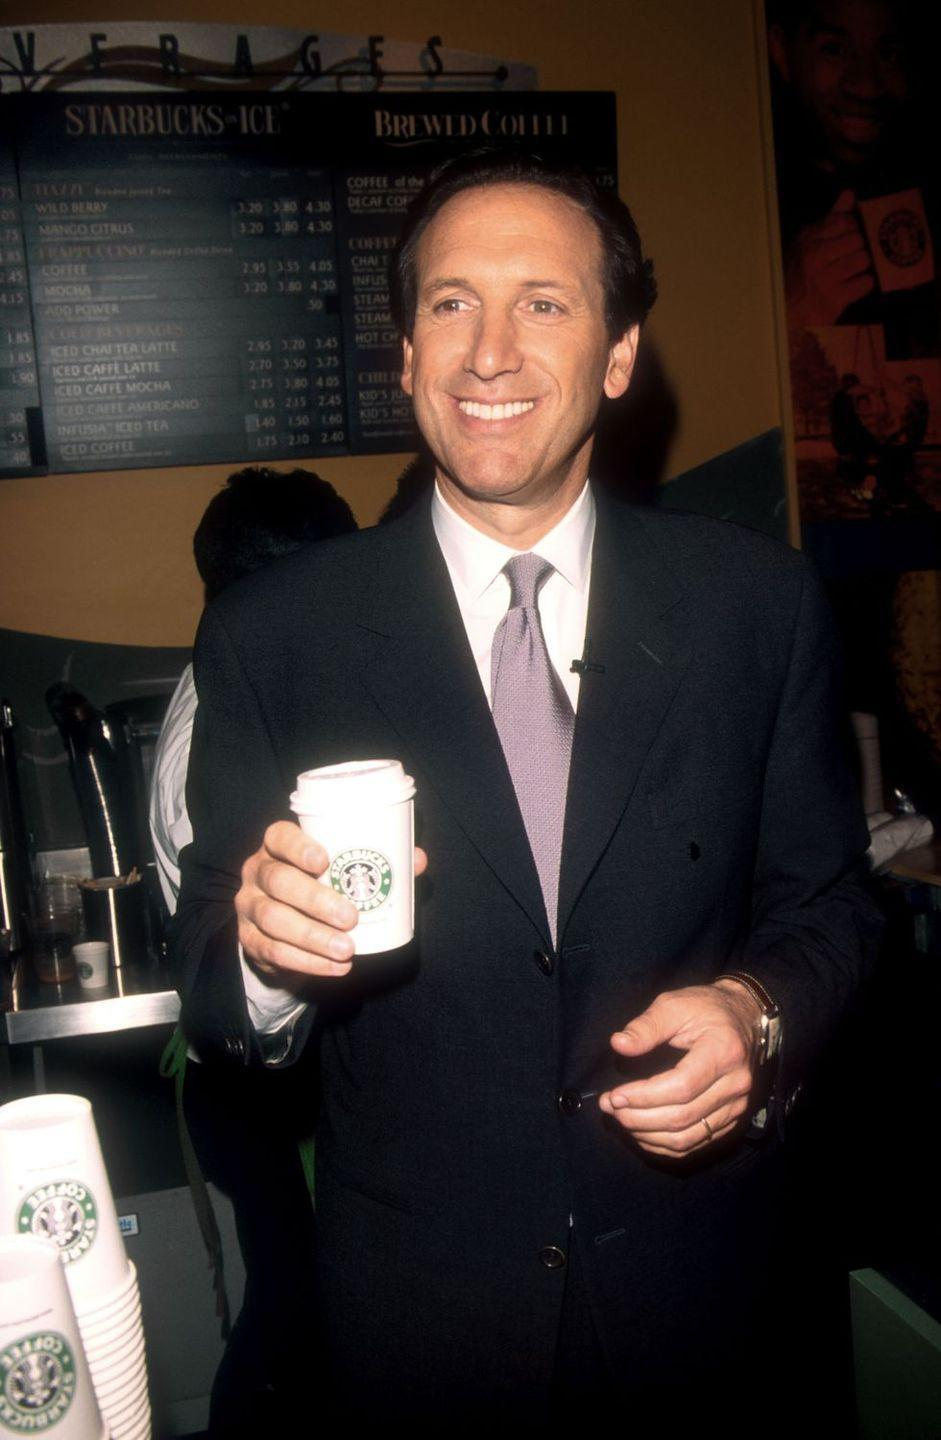 <p>Schultz left the company in 1985 to found Il Giornale, an Italian coffeehouse chain that brewed Starbucks beans. Two years later, he returned and acquired Starbucks into his new company, forming the Starbucks Corporation. After the acquisition, Schultz opened three new stores, bringing the chain's total number of locations to 17. </p>